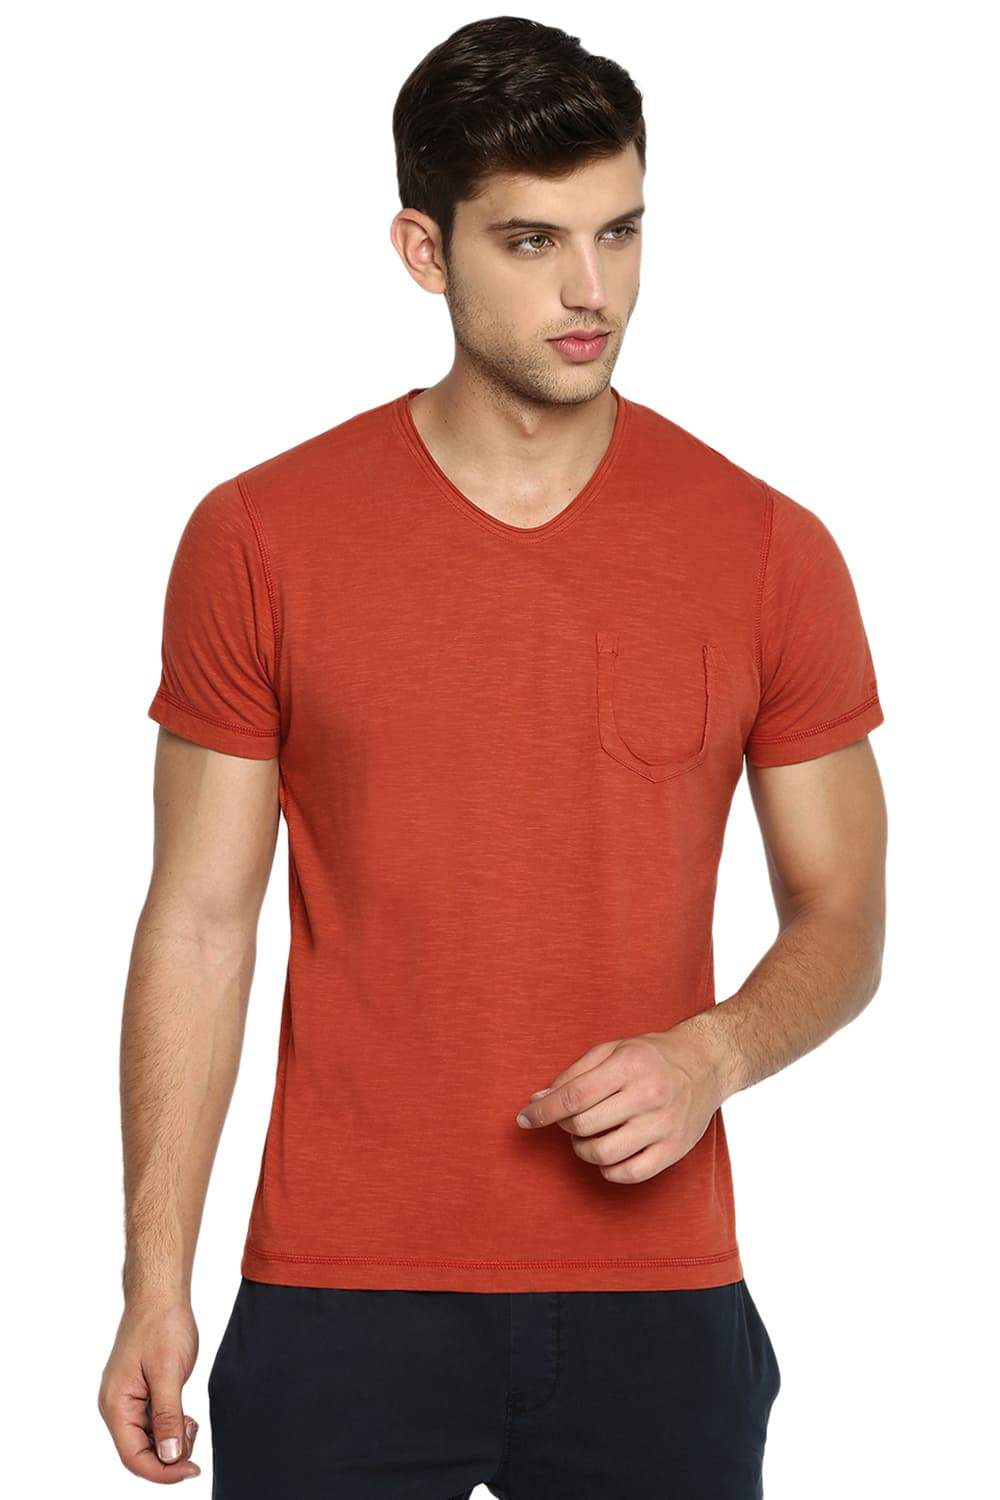 BASICS MUSCLE FIT PICANTE V NECK T SHIRT-19BTS41023